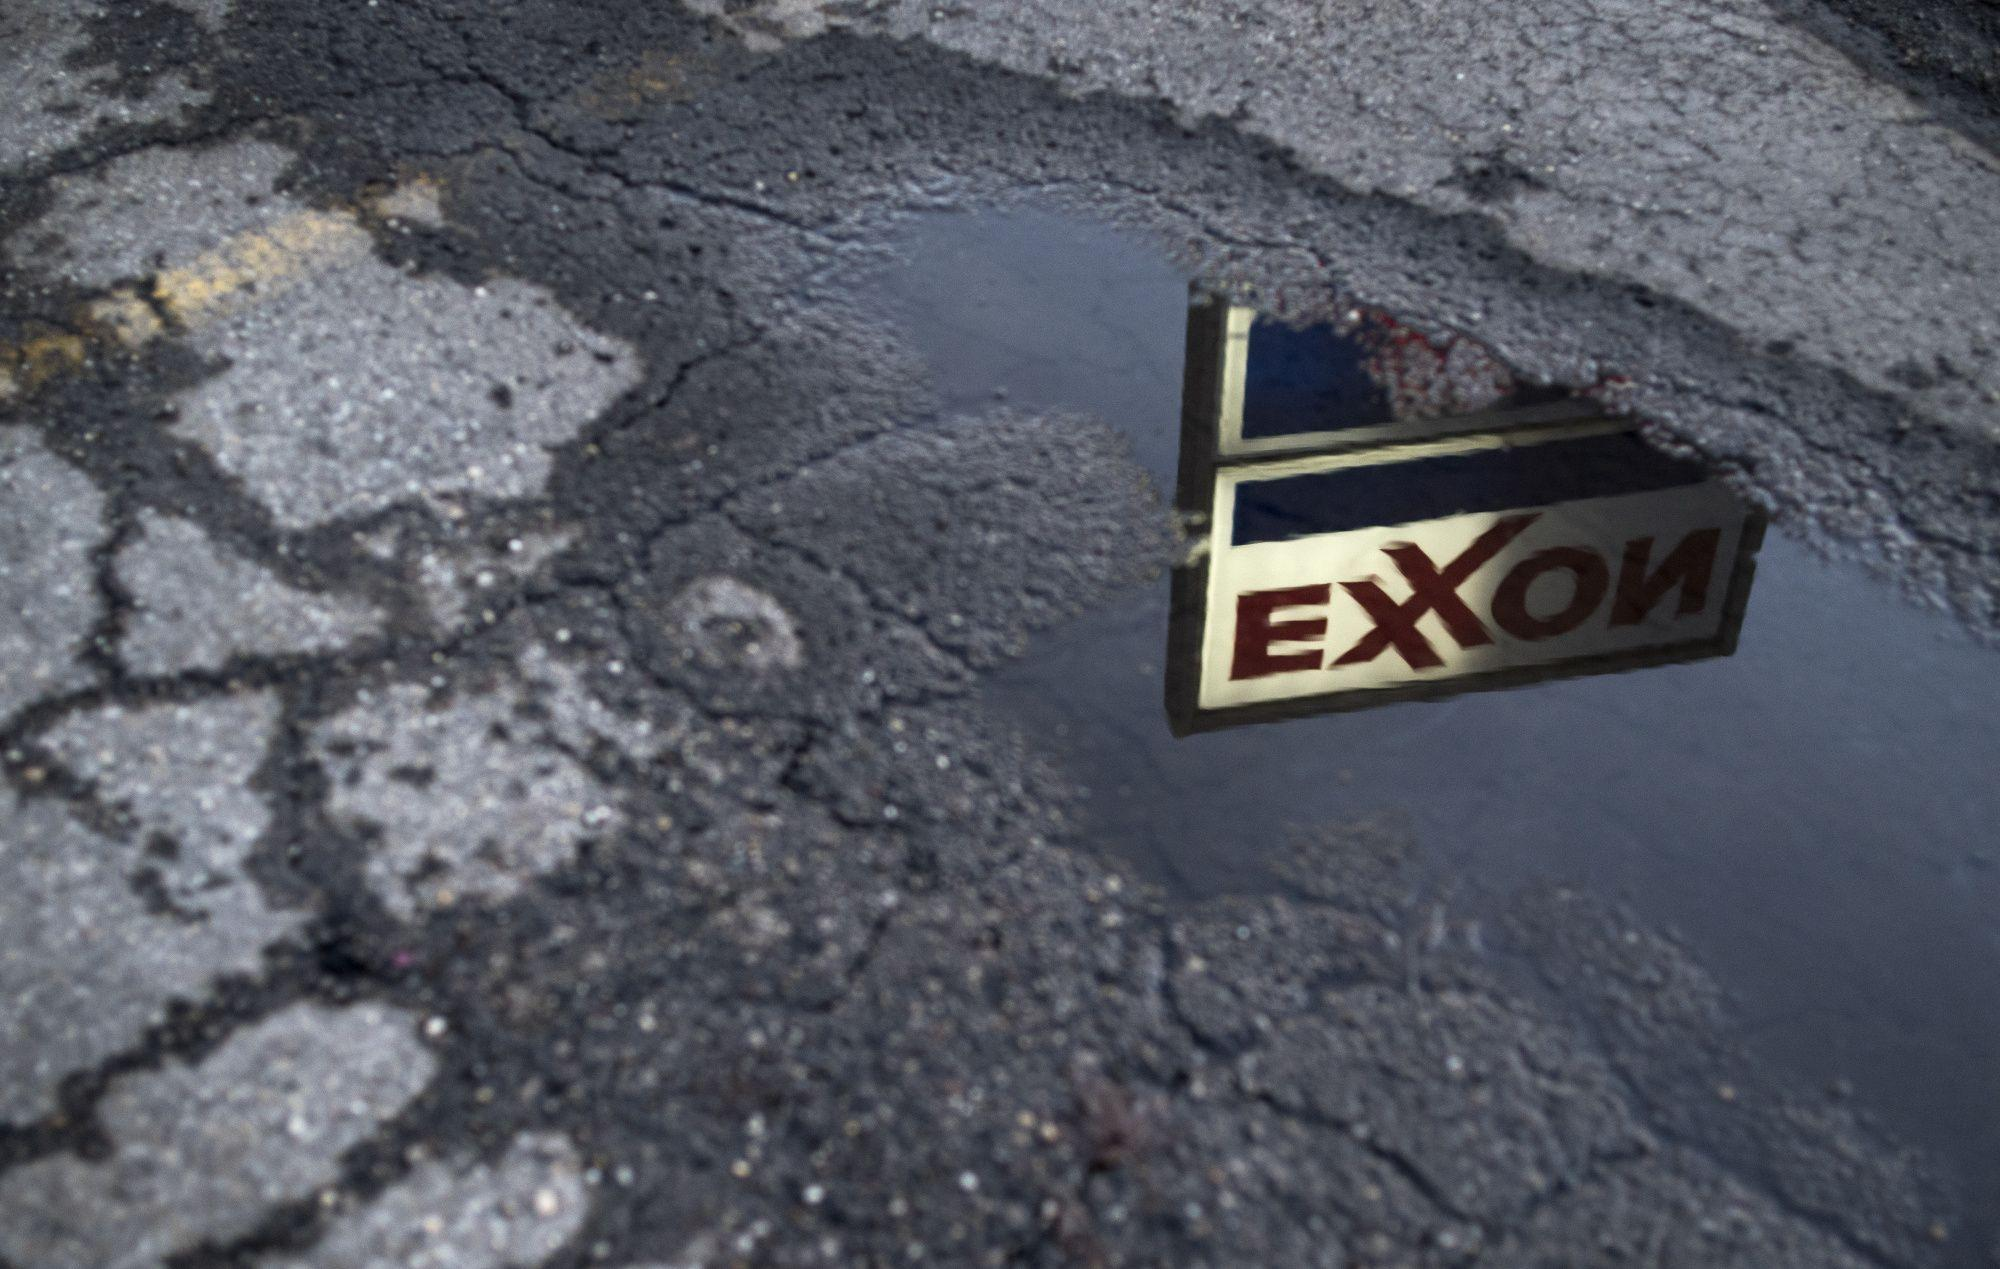 Exxon Says N.Y. Used Fraud Claims to Score Political Points